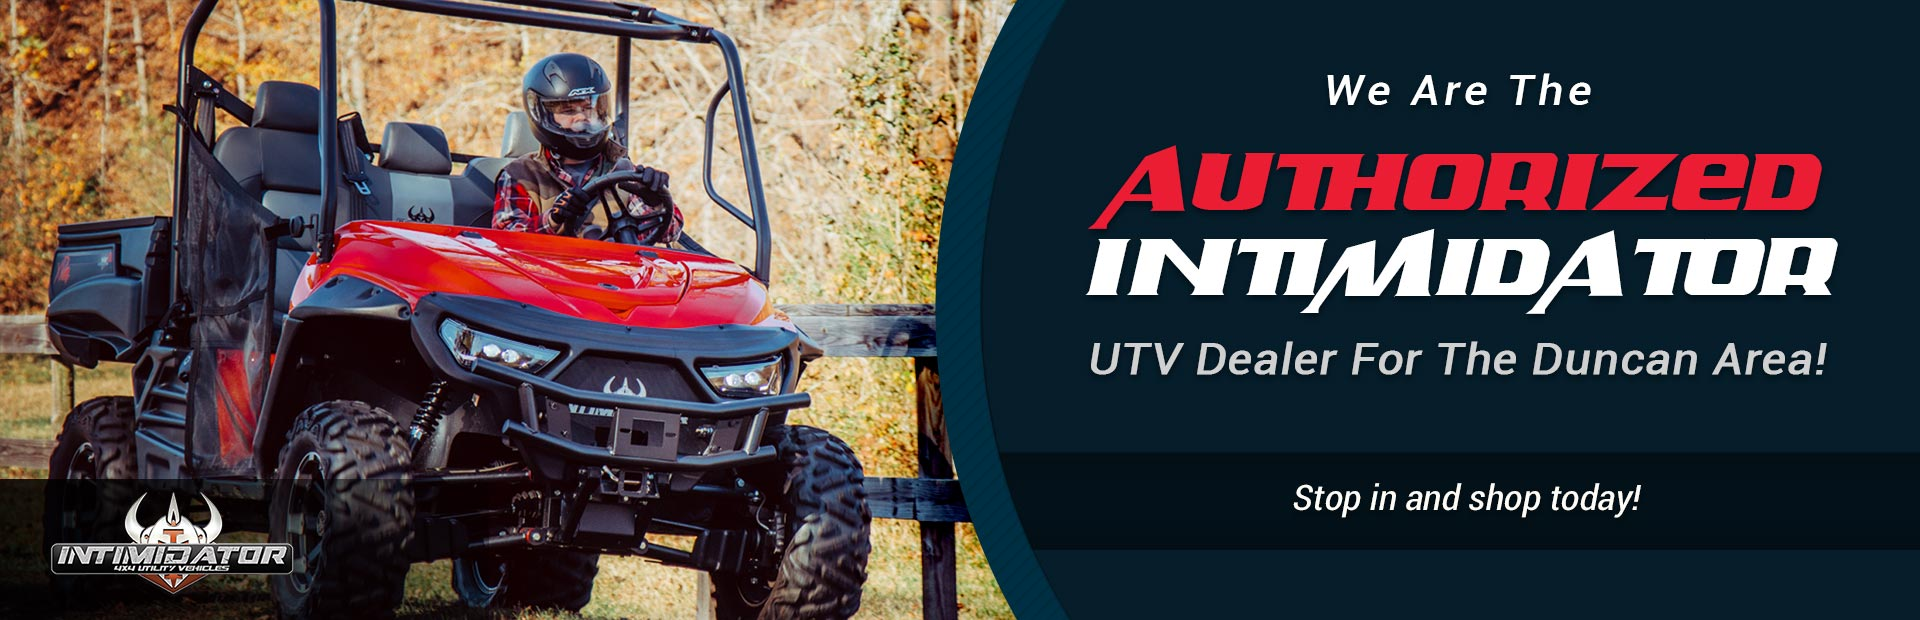 We are the authorized Intimidator UTV dealer for the Duncan area! Stop in and shop today.